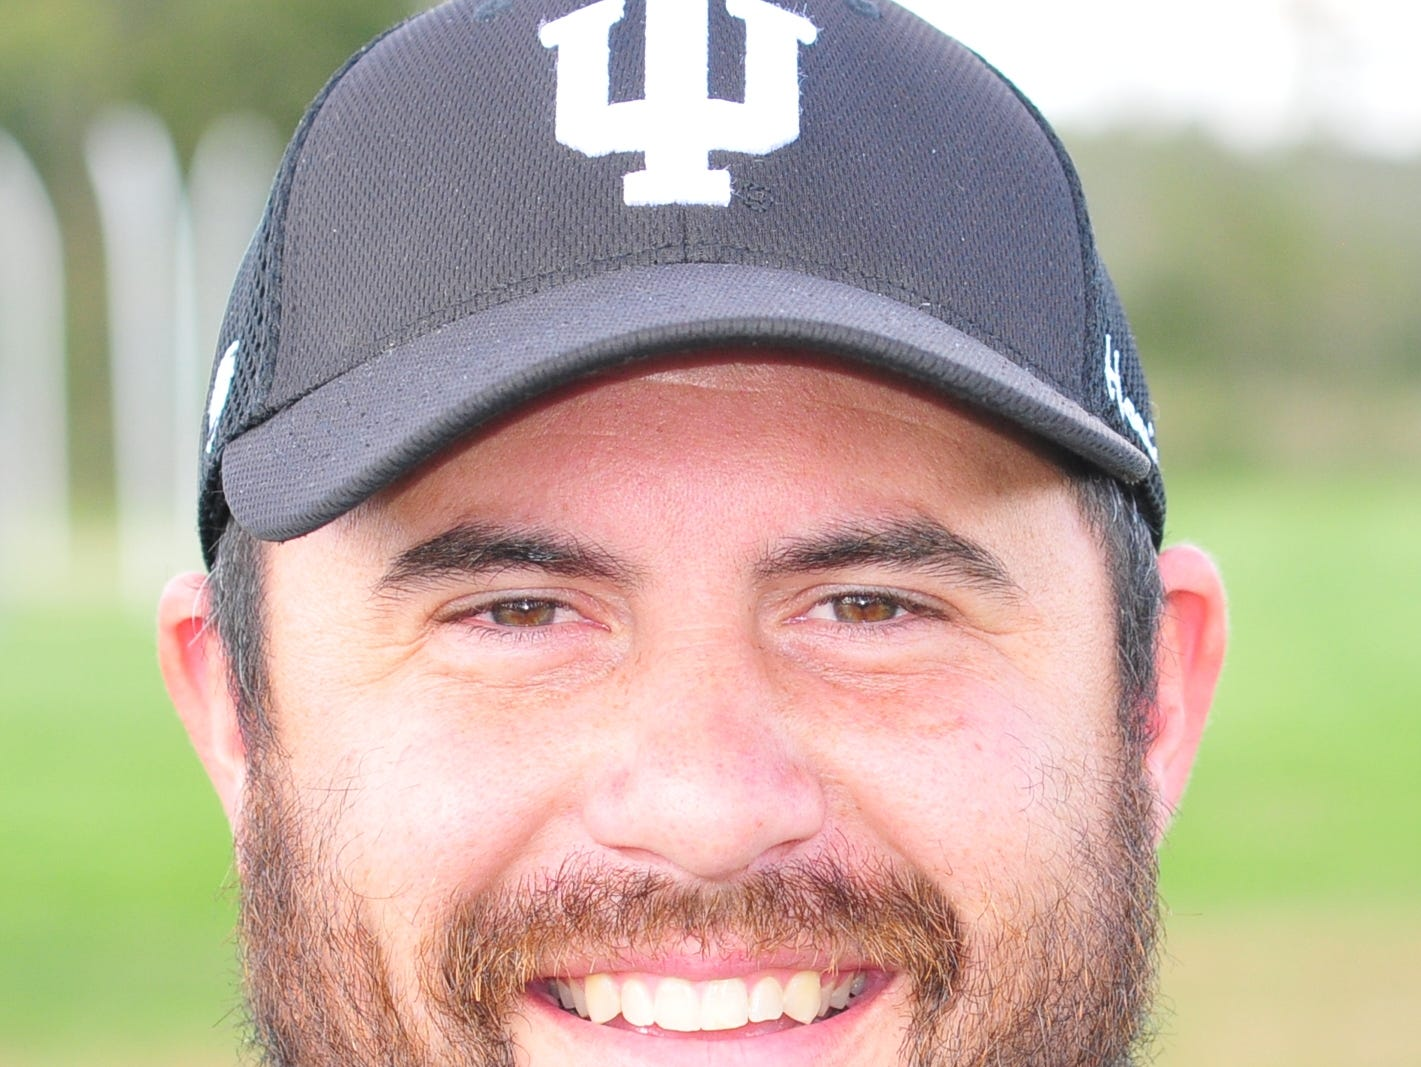 Wes Oler was named Northeastern High School's football co-coach after longtime head coach Mike Roeder resigned on Oct. 3, 2018.